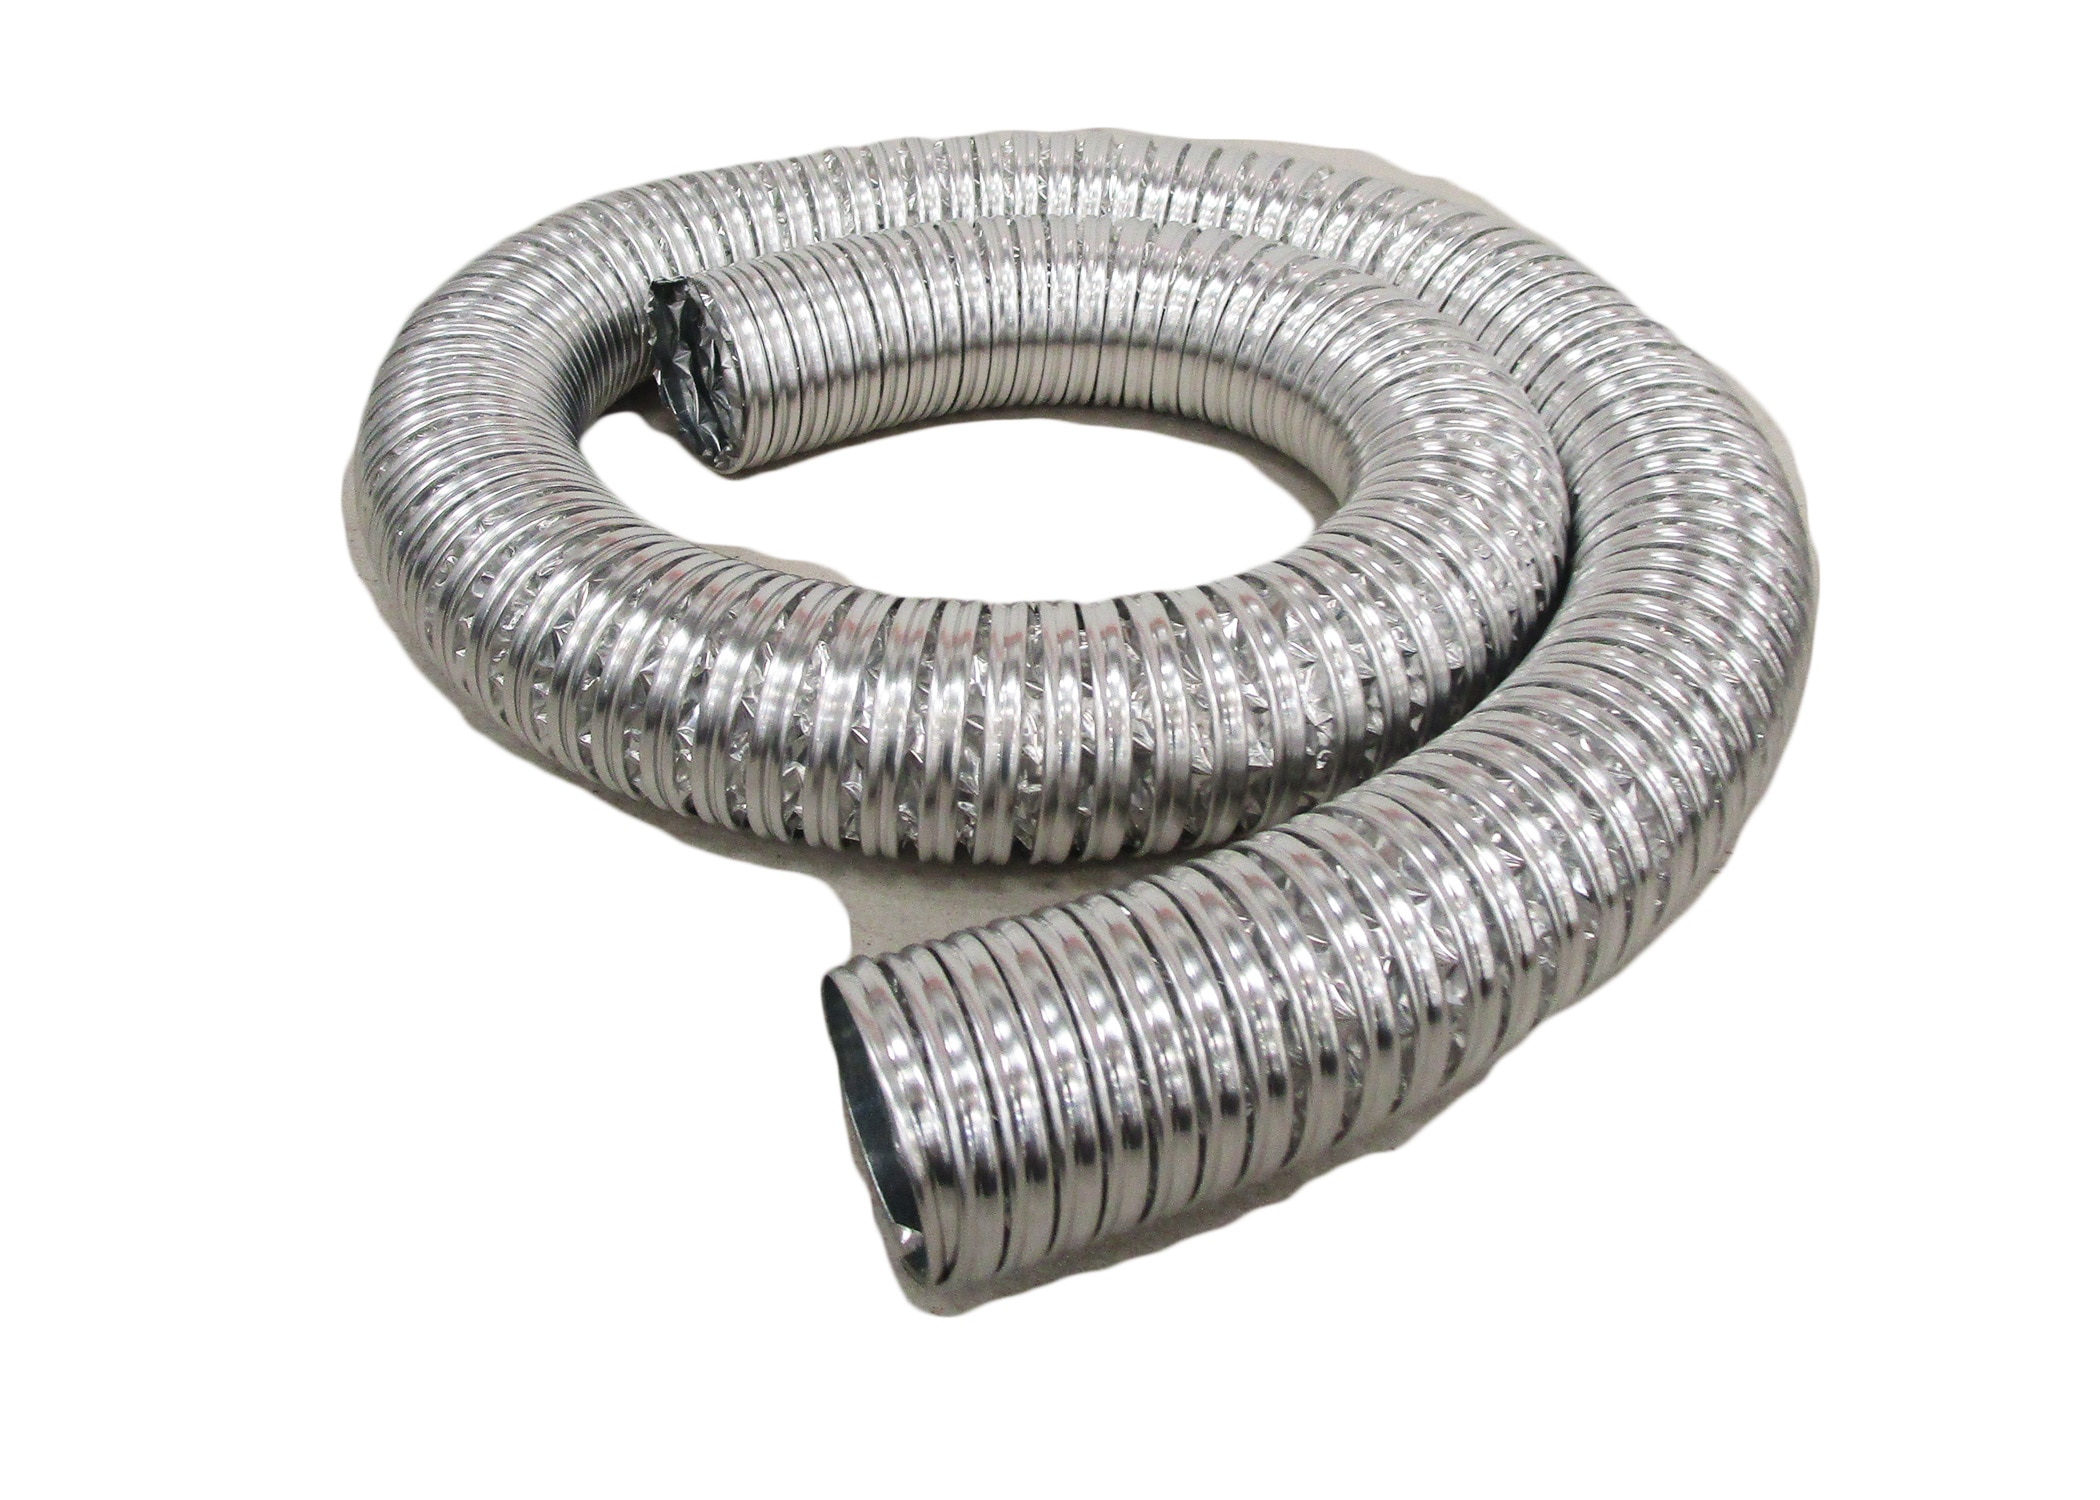 JET — Heat Resistant Dust Collection Hose, 2 in dia x 8 ft length, max 130 degrees